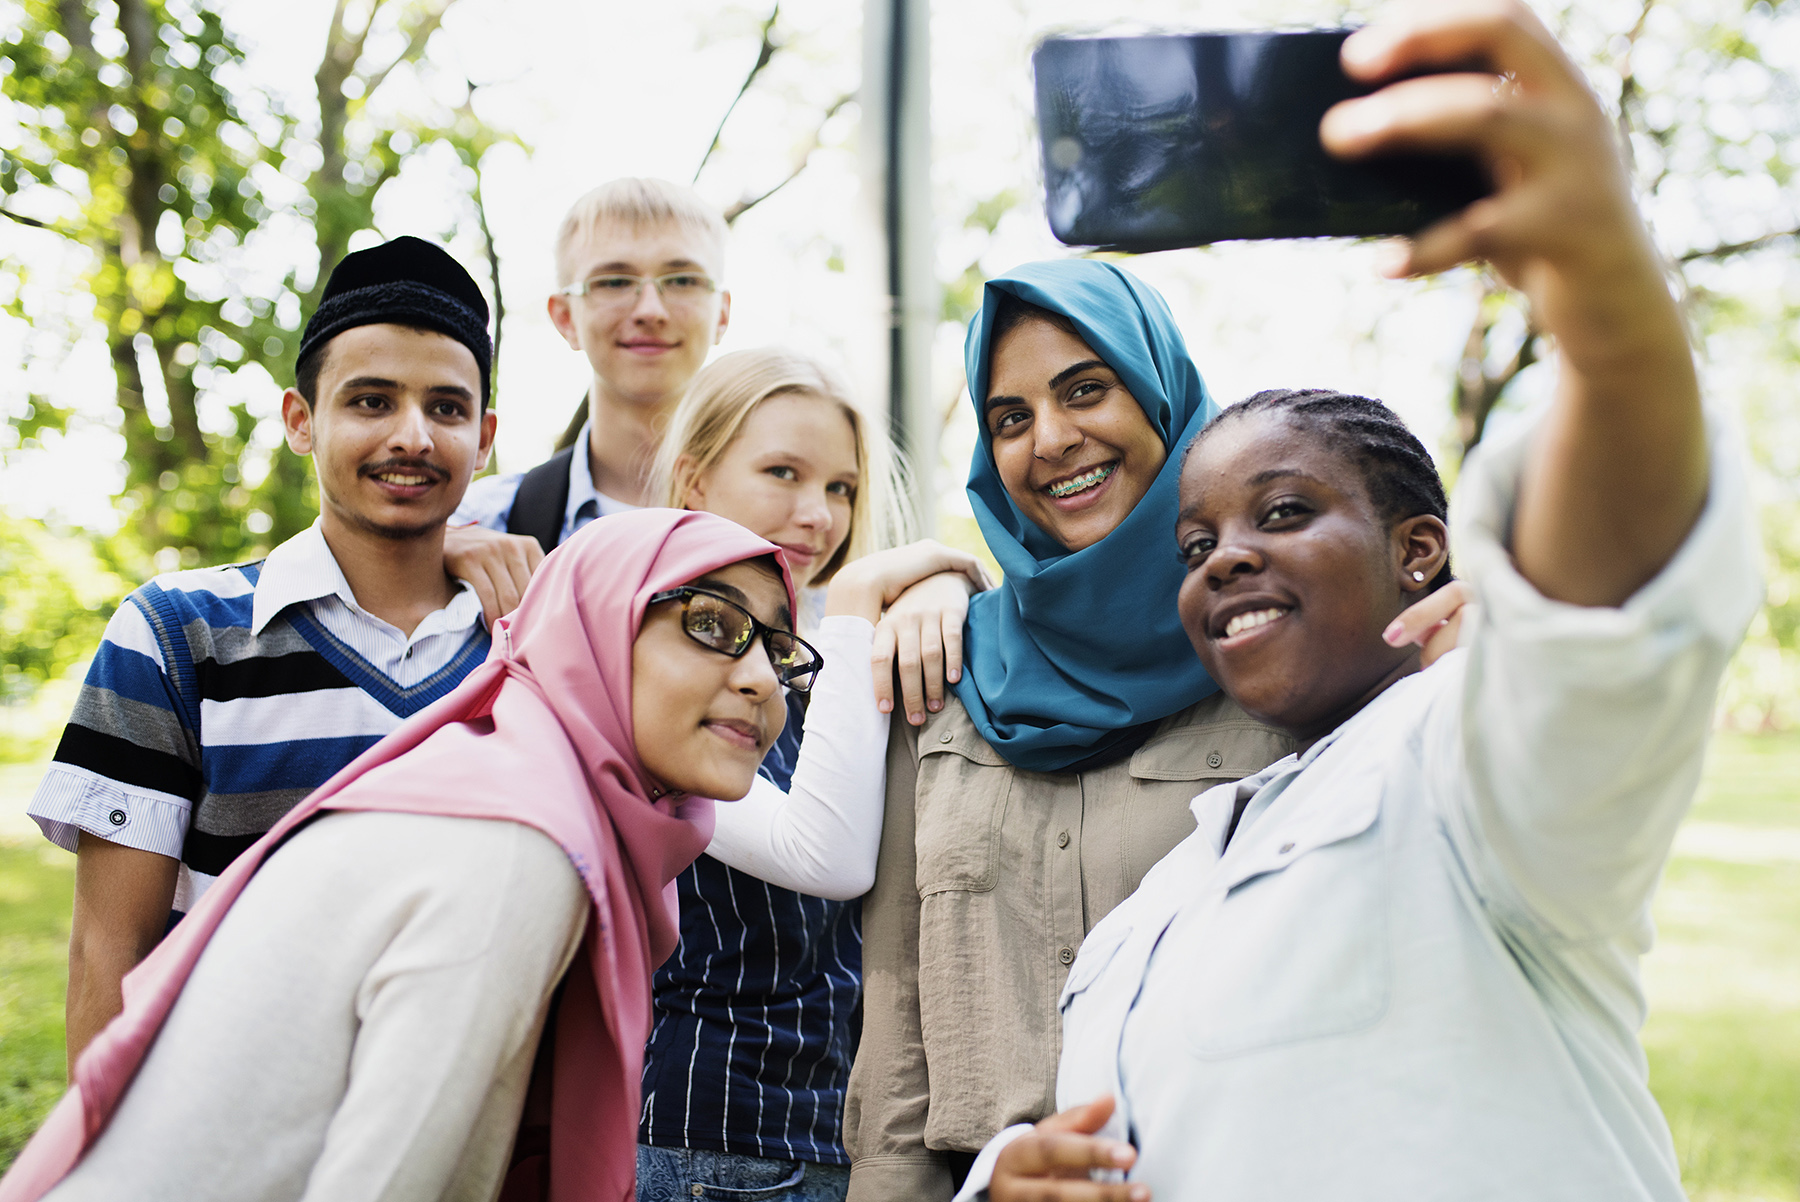 International students in Germany